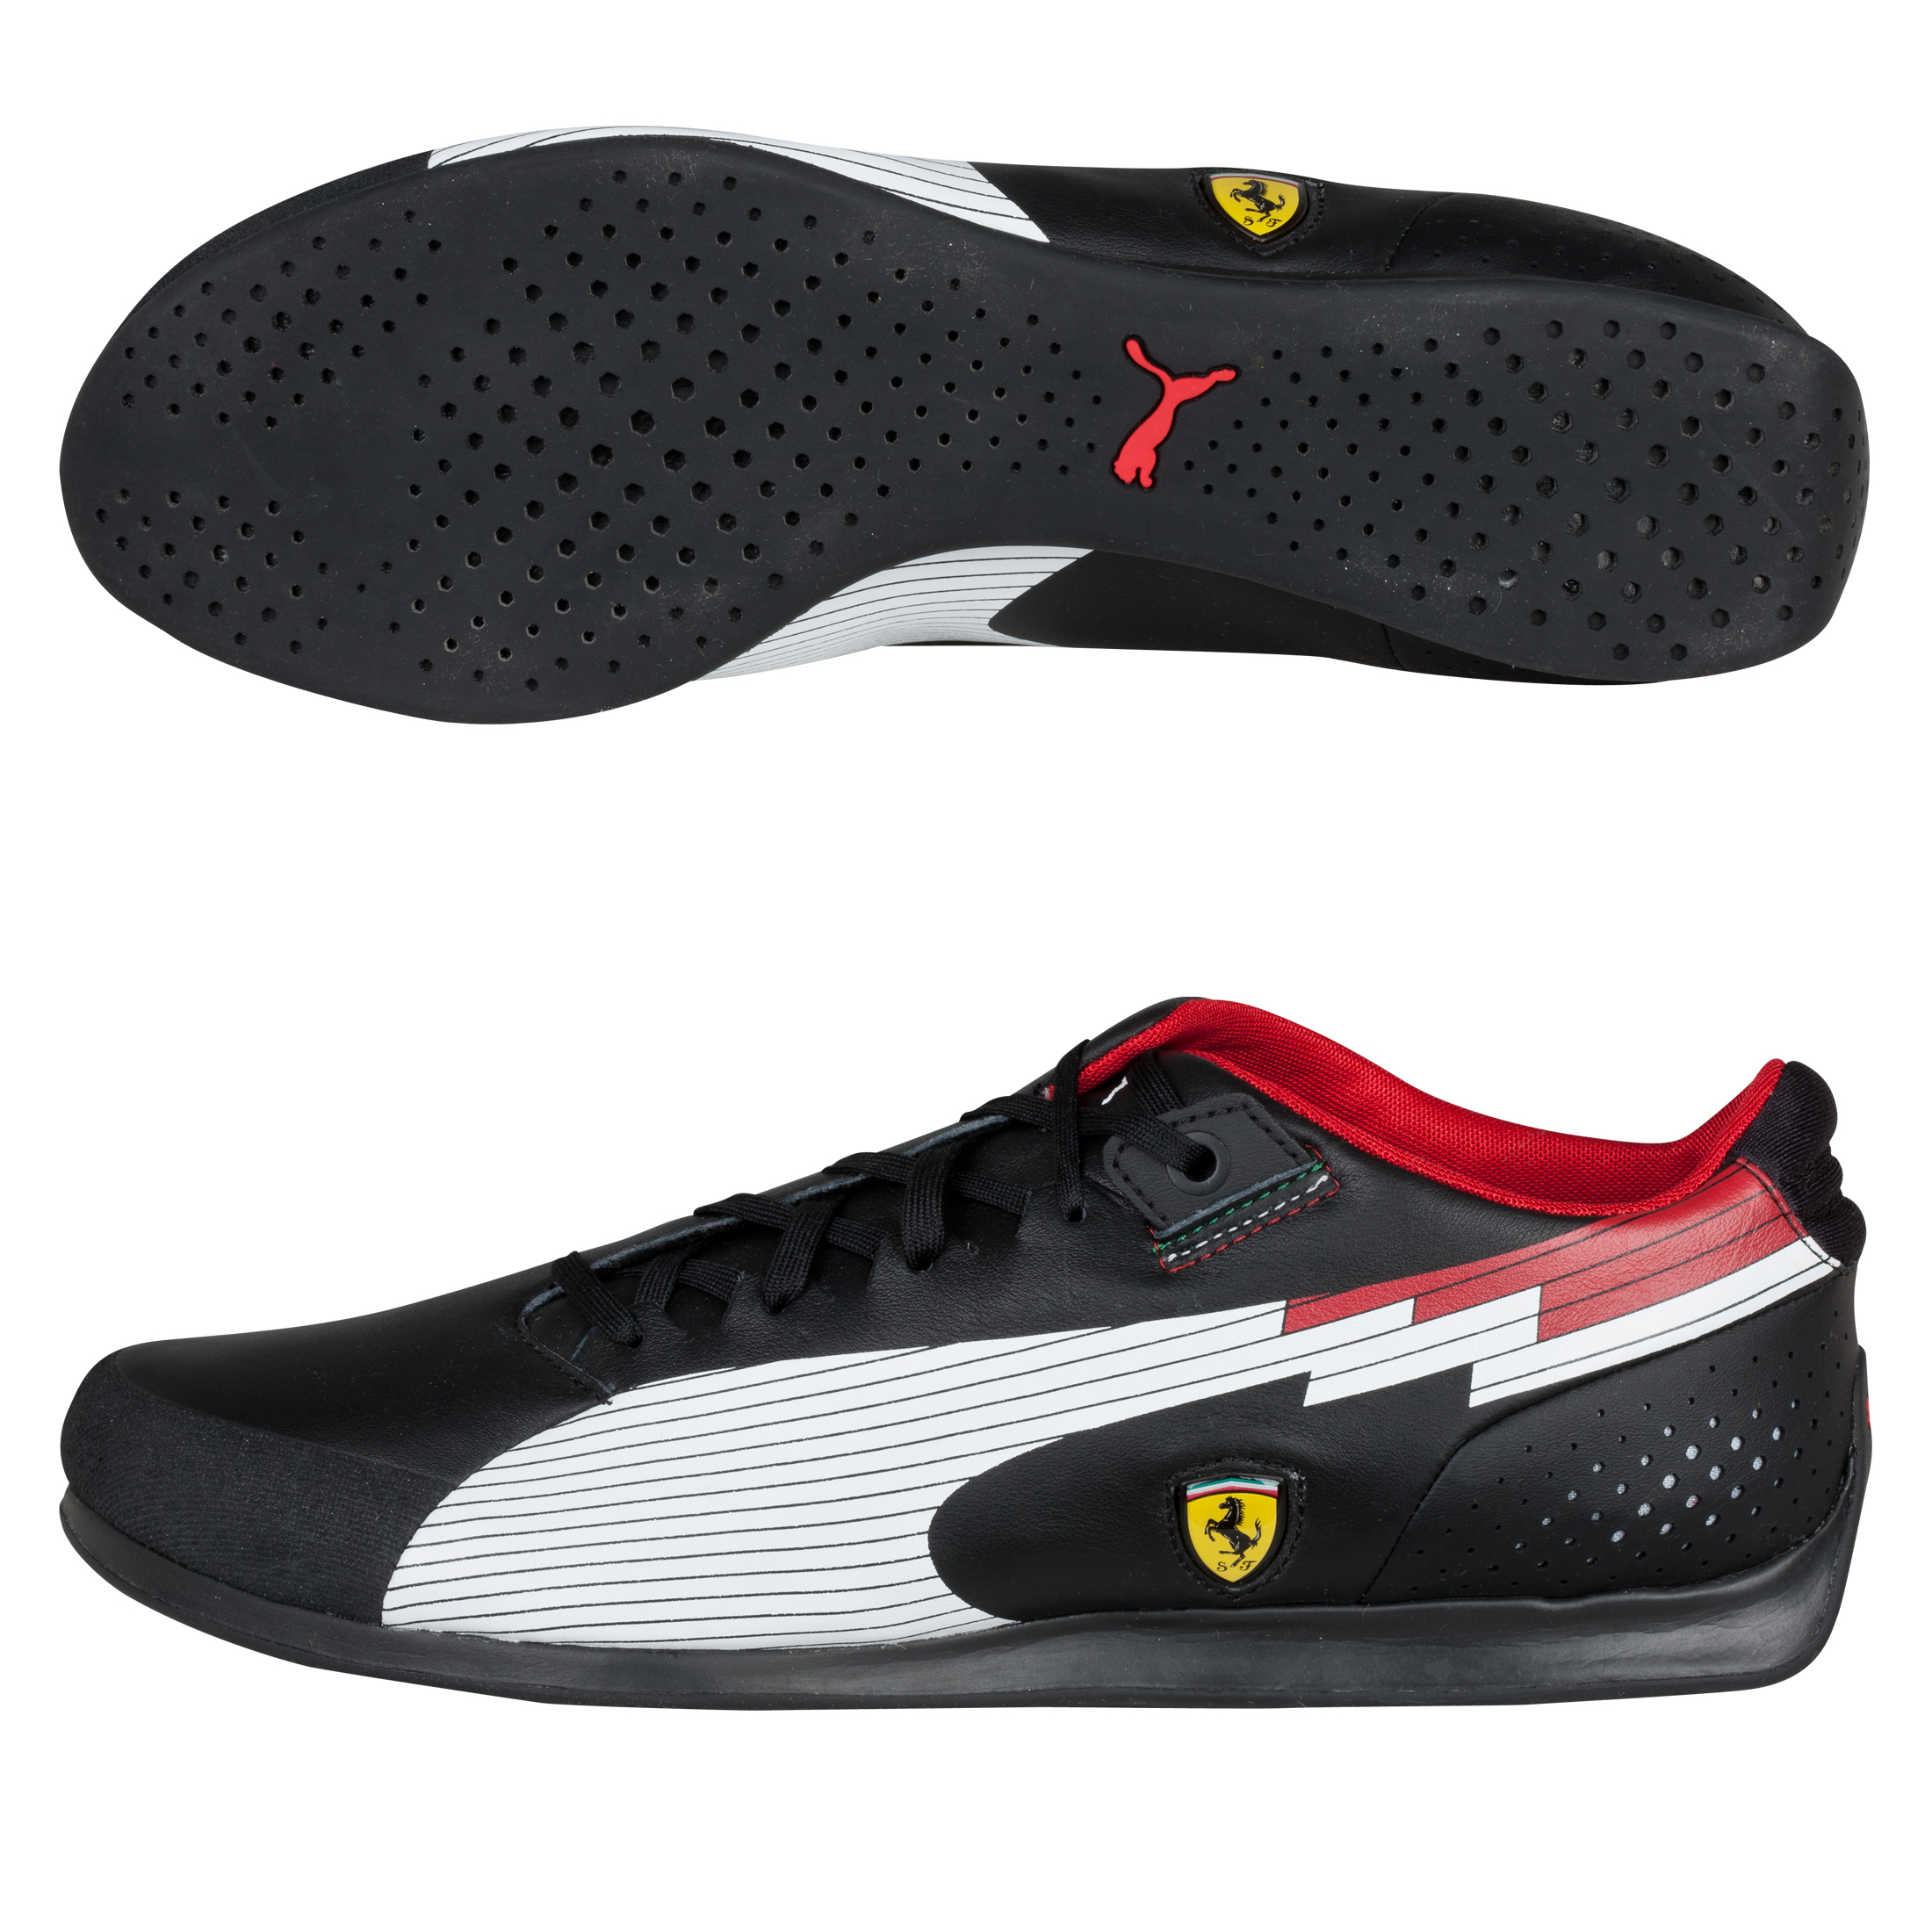 Scuderia Ferrari EvoSpeed Lo - Black/White